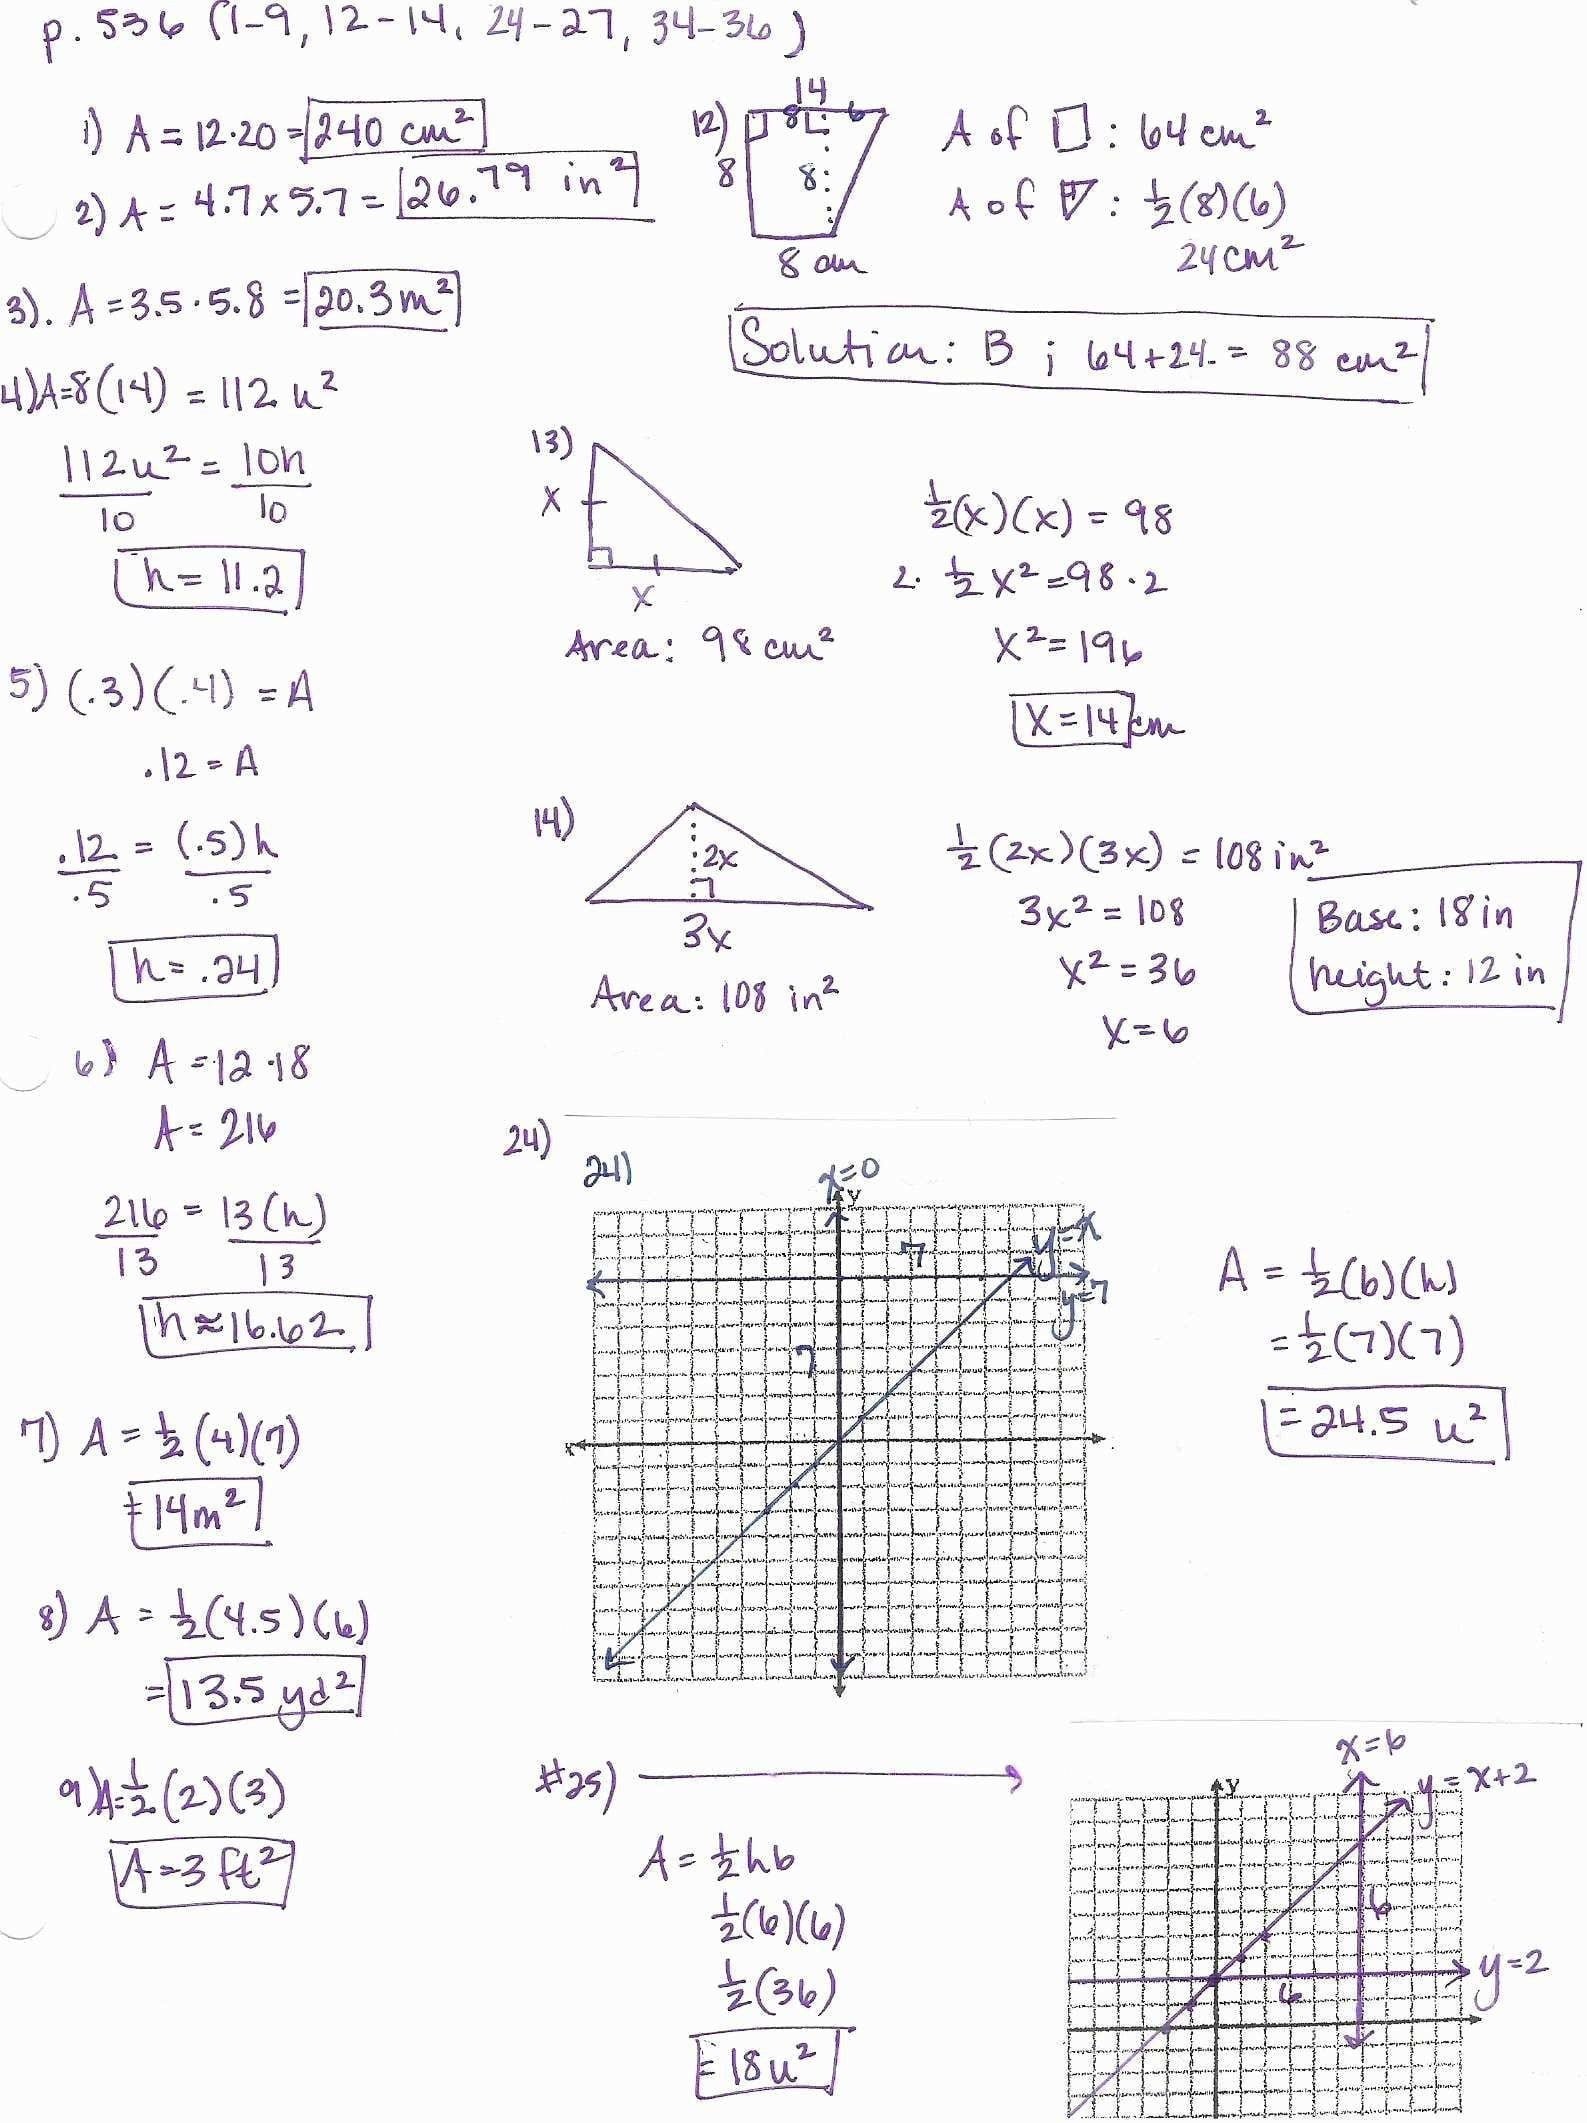 Triangle Sum And Exterior Angle Theorem Worksheet  Yooob Pertaining To Triangle Sum And Exterior Angle Theorem Worksheet